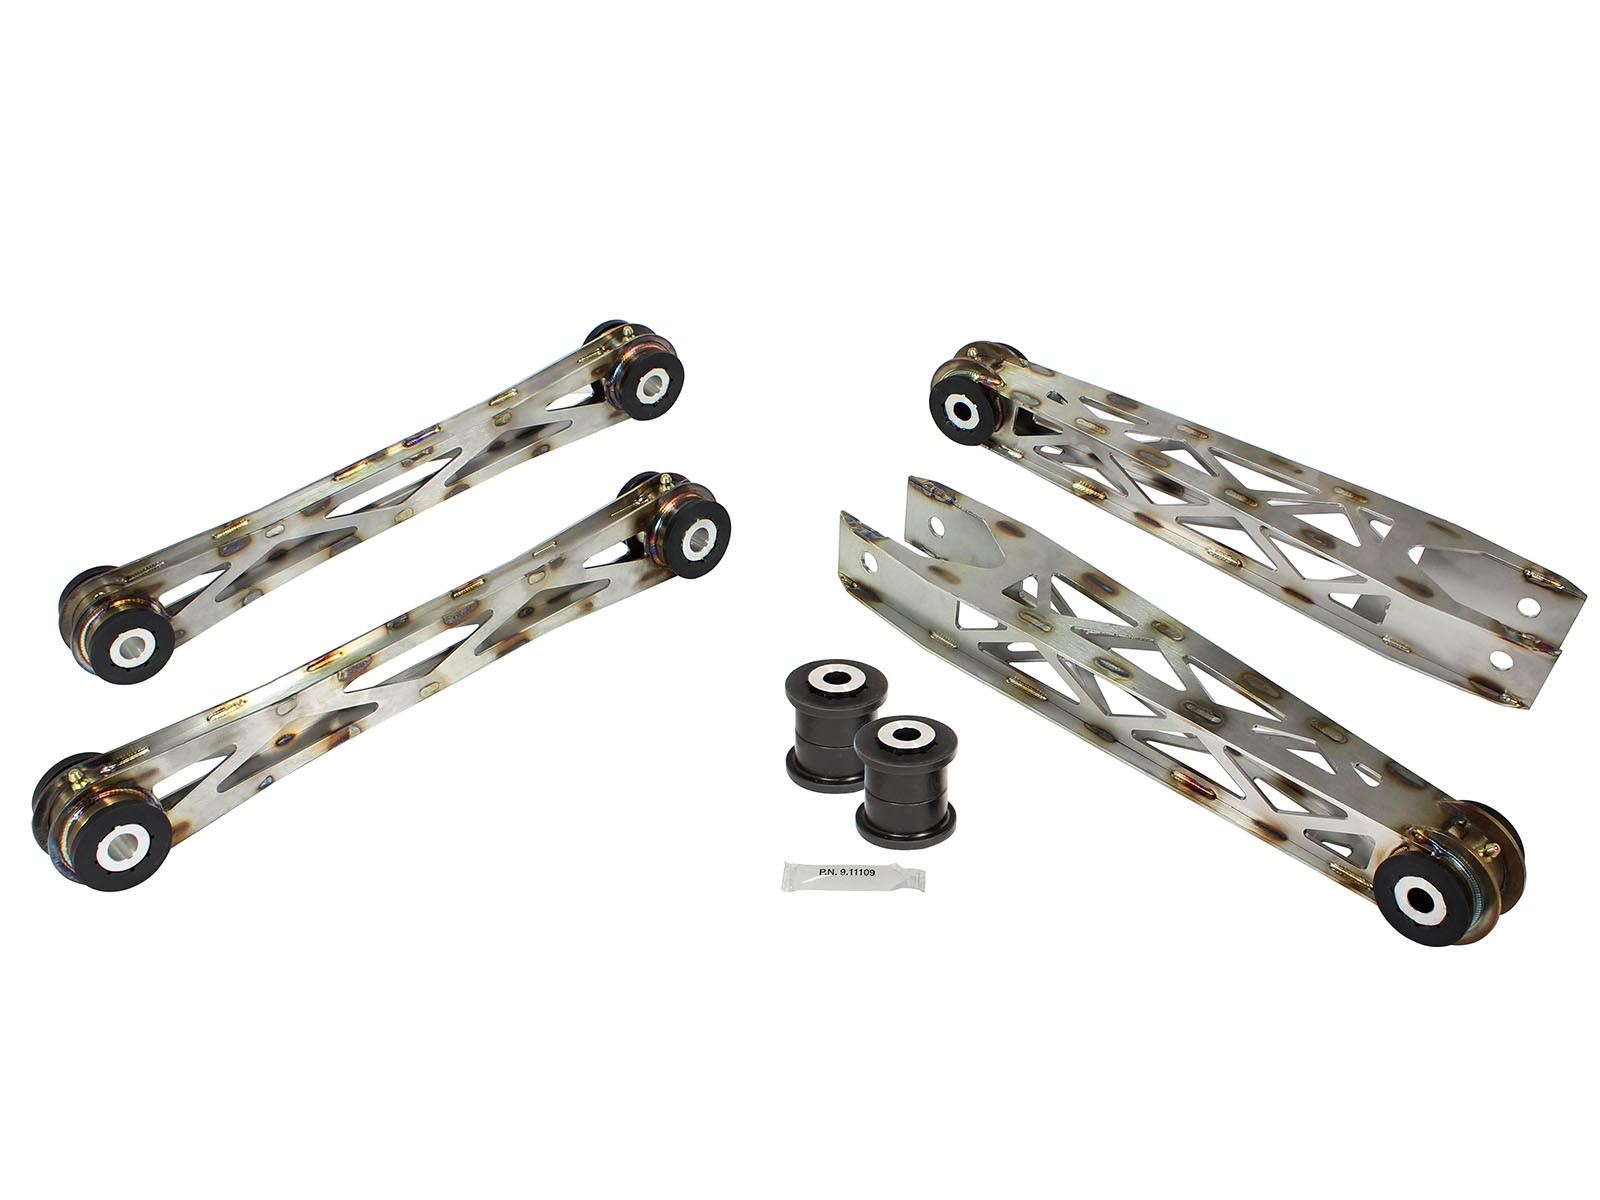 aFe Control PFADT Series Rear Trailing Arms/Tie Rods